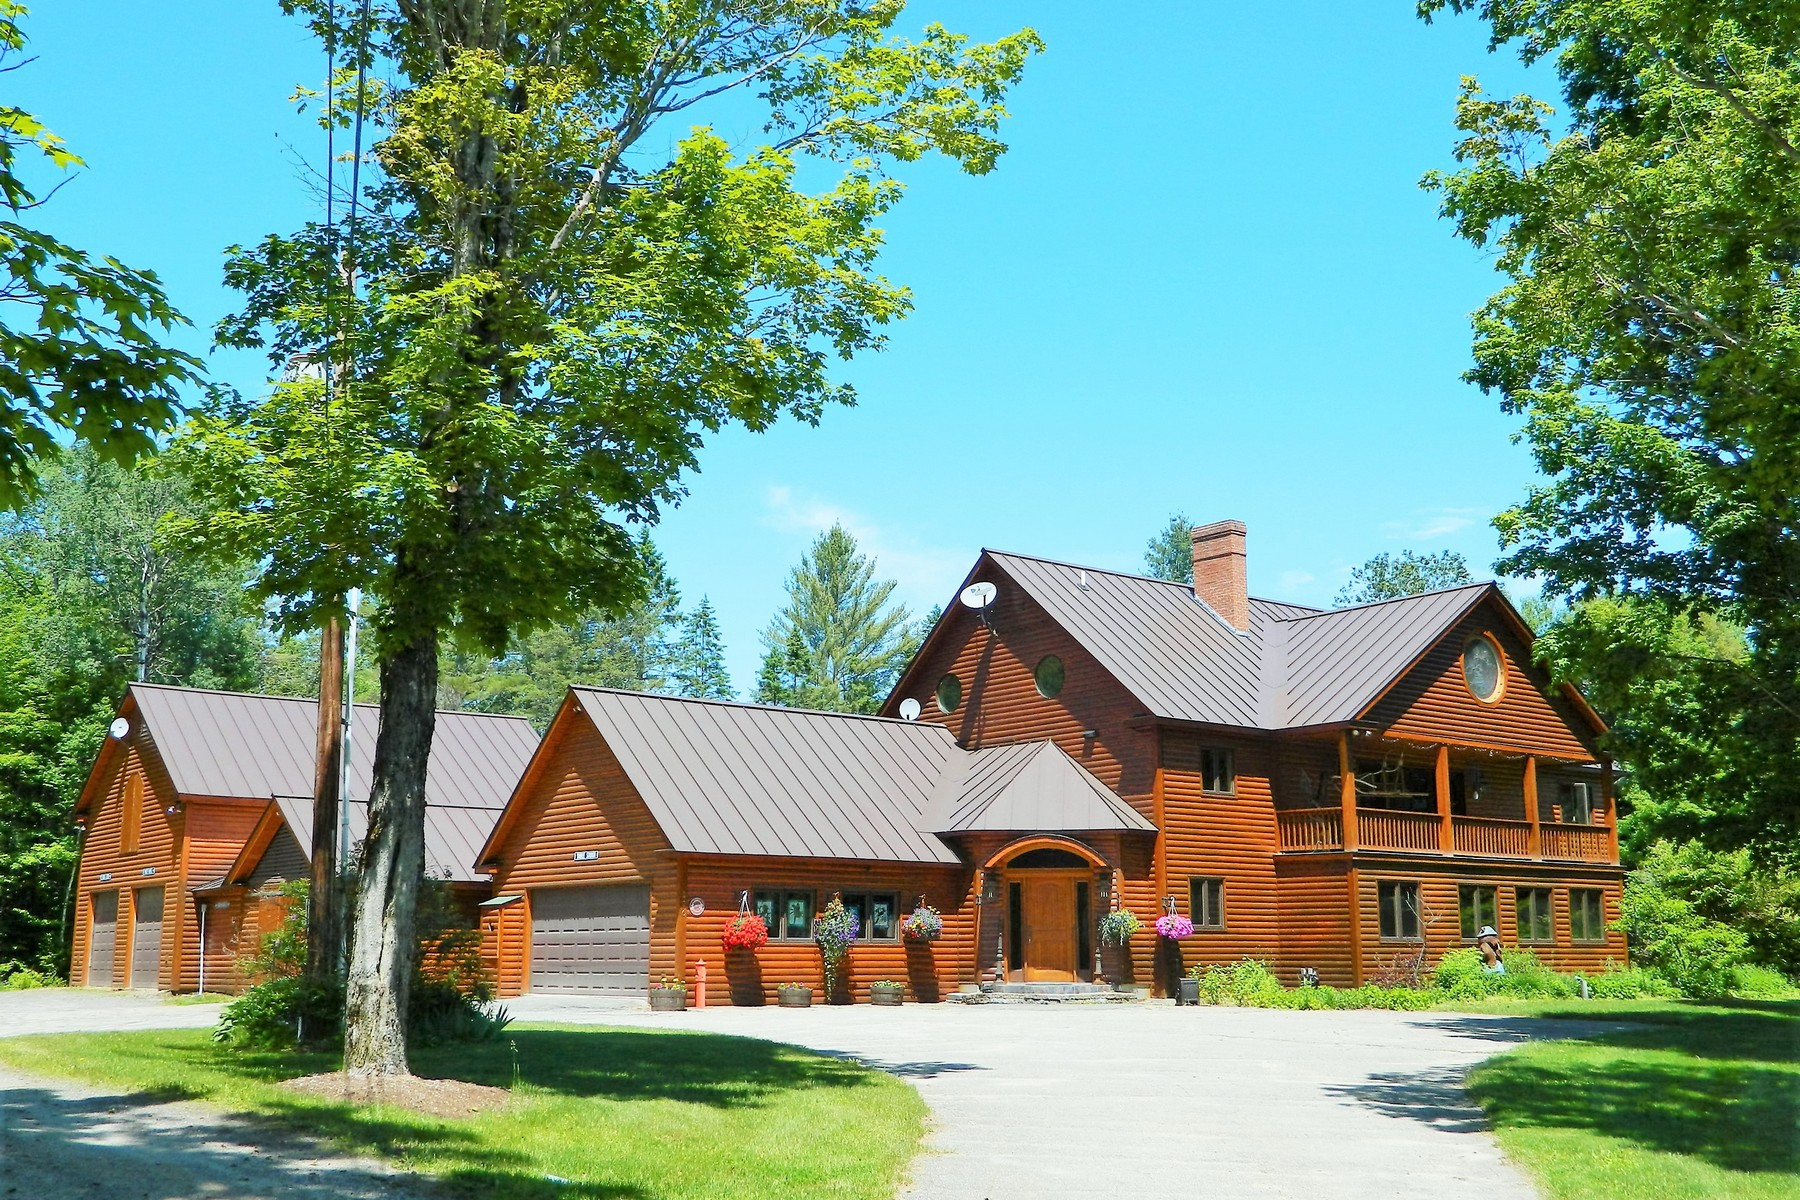 Maison unifamiliale pour l Vente à Kingdom Lodge and Chalets 226 East Darling Hill Rd Burke, Vermont 05832 États-Unis